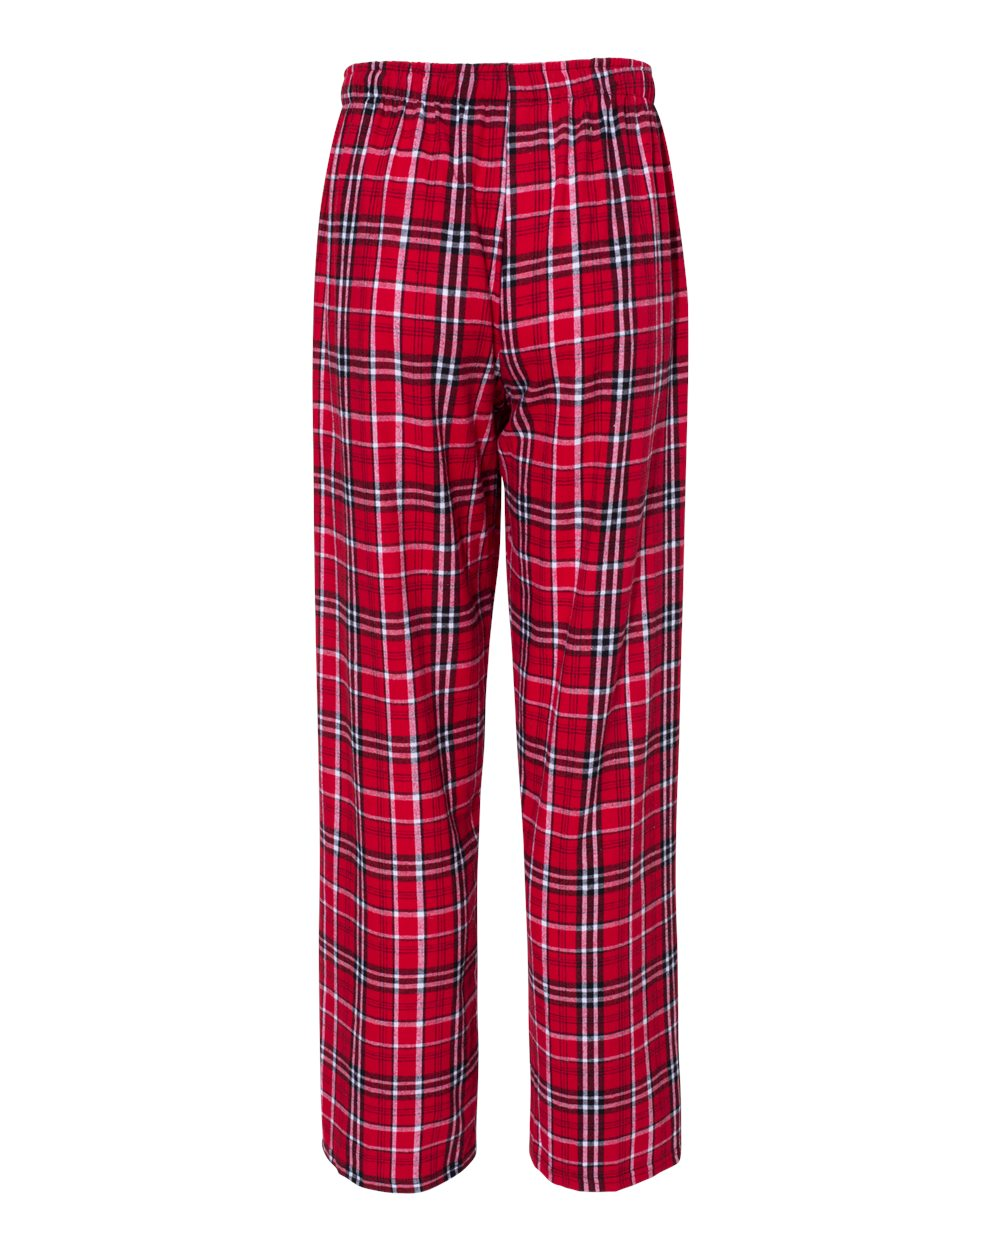 Boxercraft-Unisex-Flannel-Pants-With-Pockets-Pajama-Pants-F20-up-to-2XL thumbnail 43